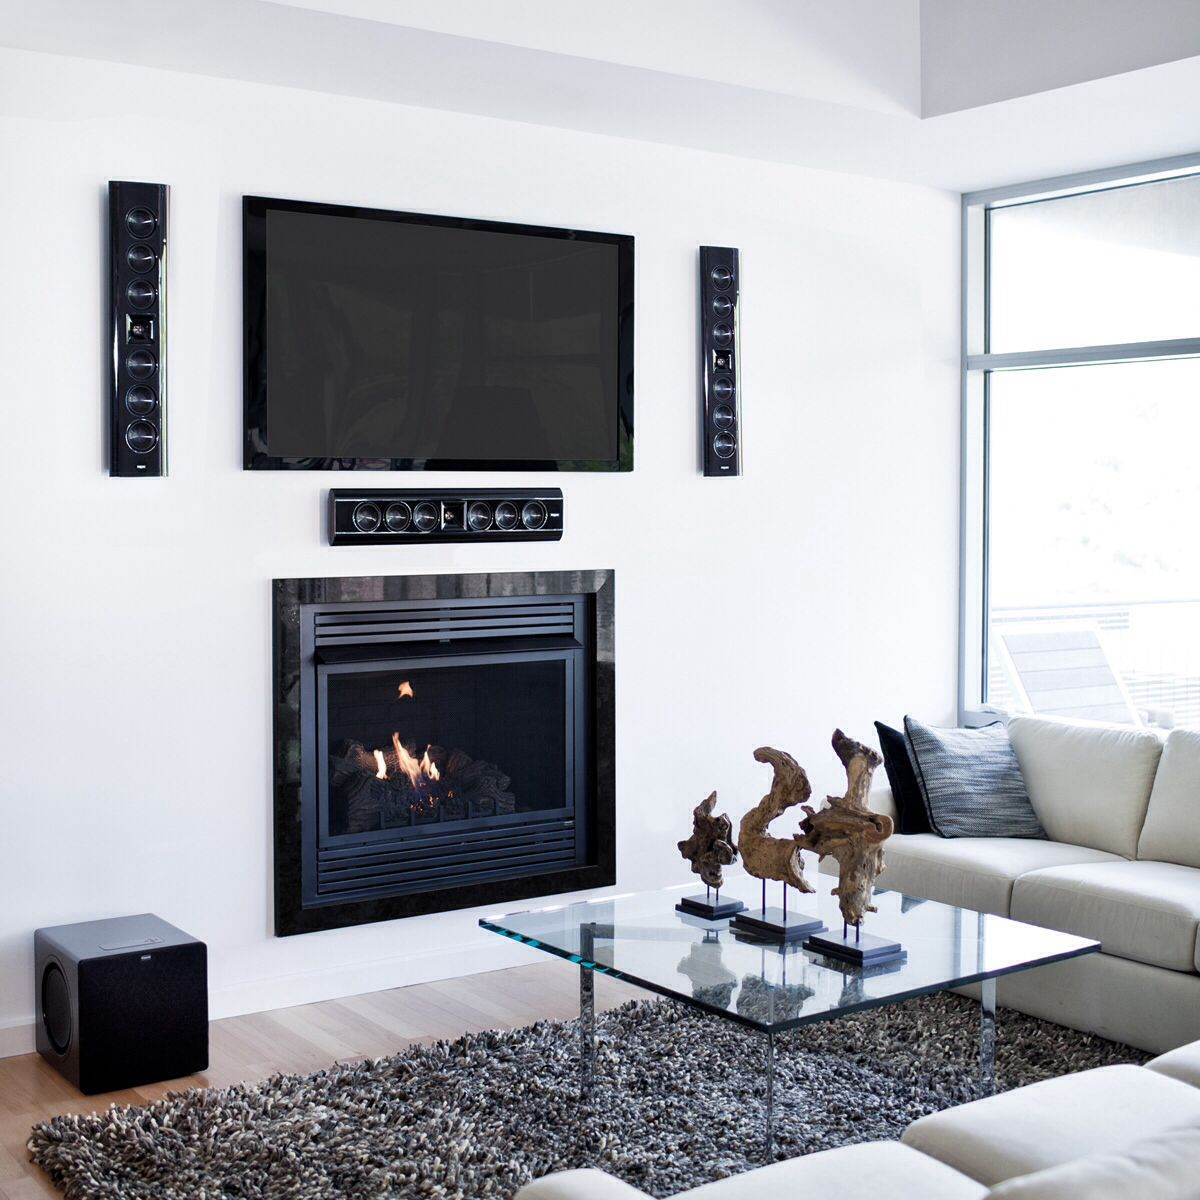 In Wall Mounted Entertainment System Everything Condo